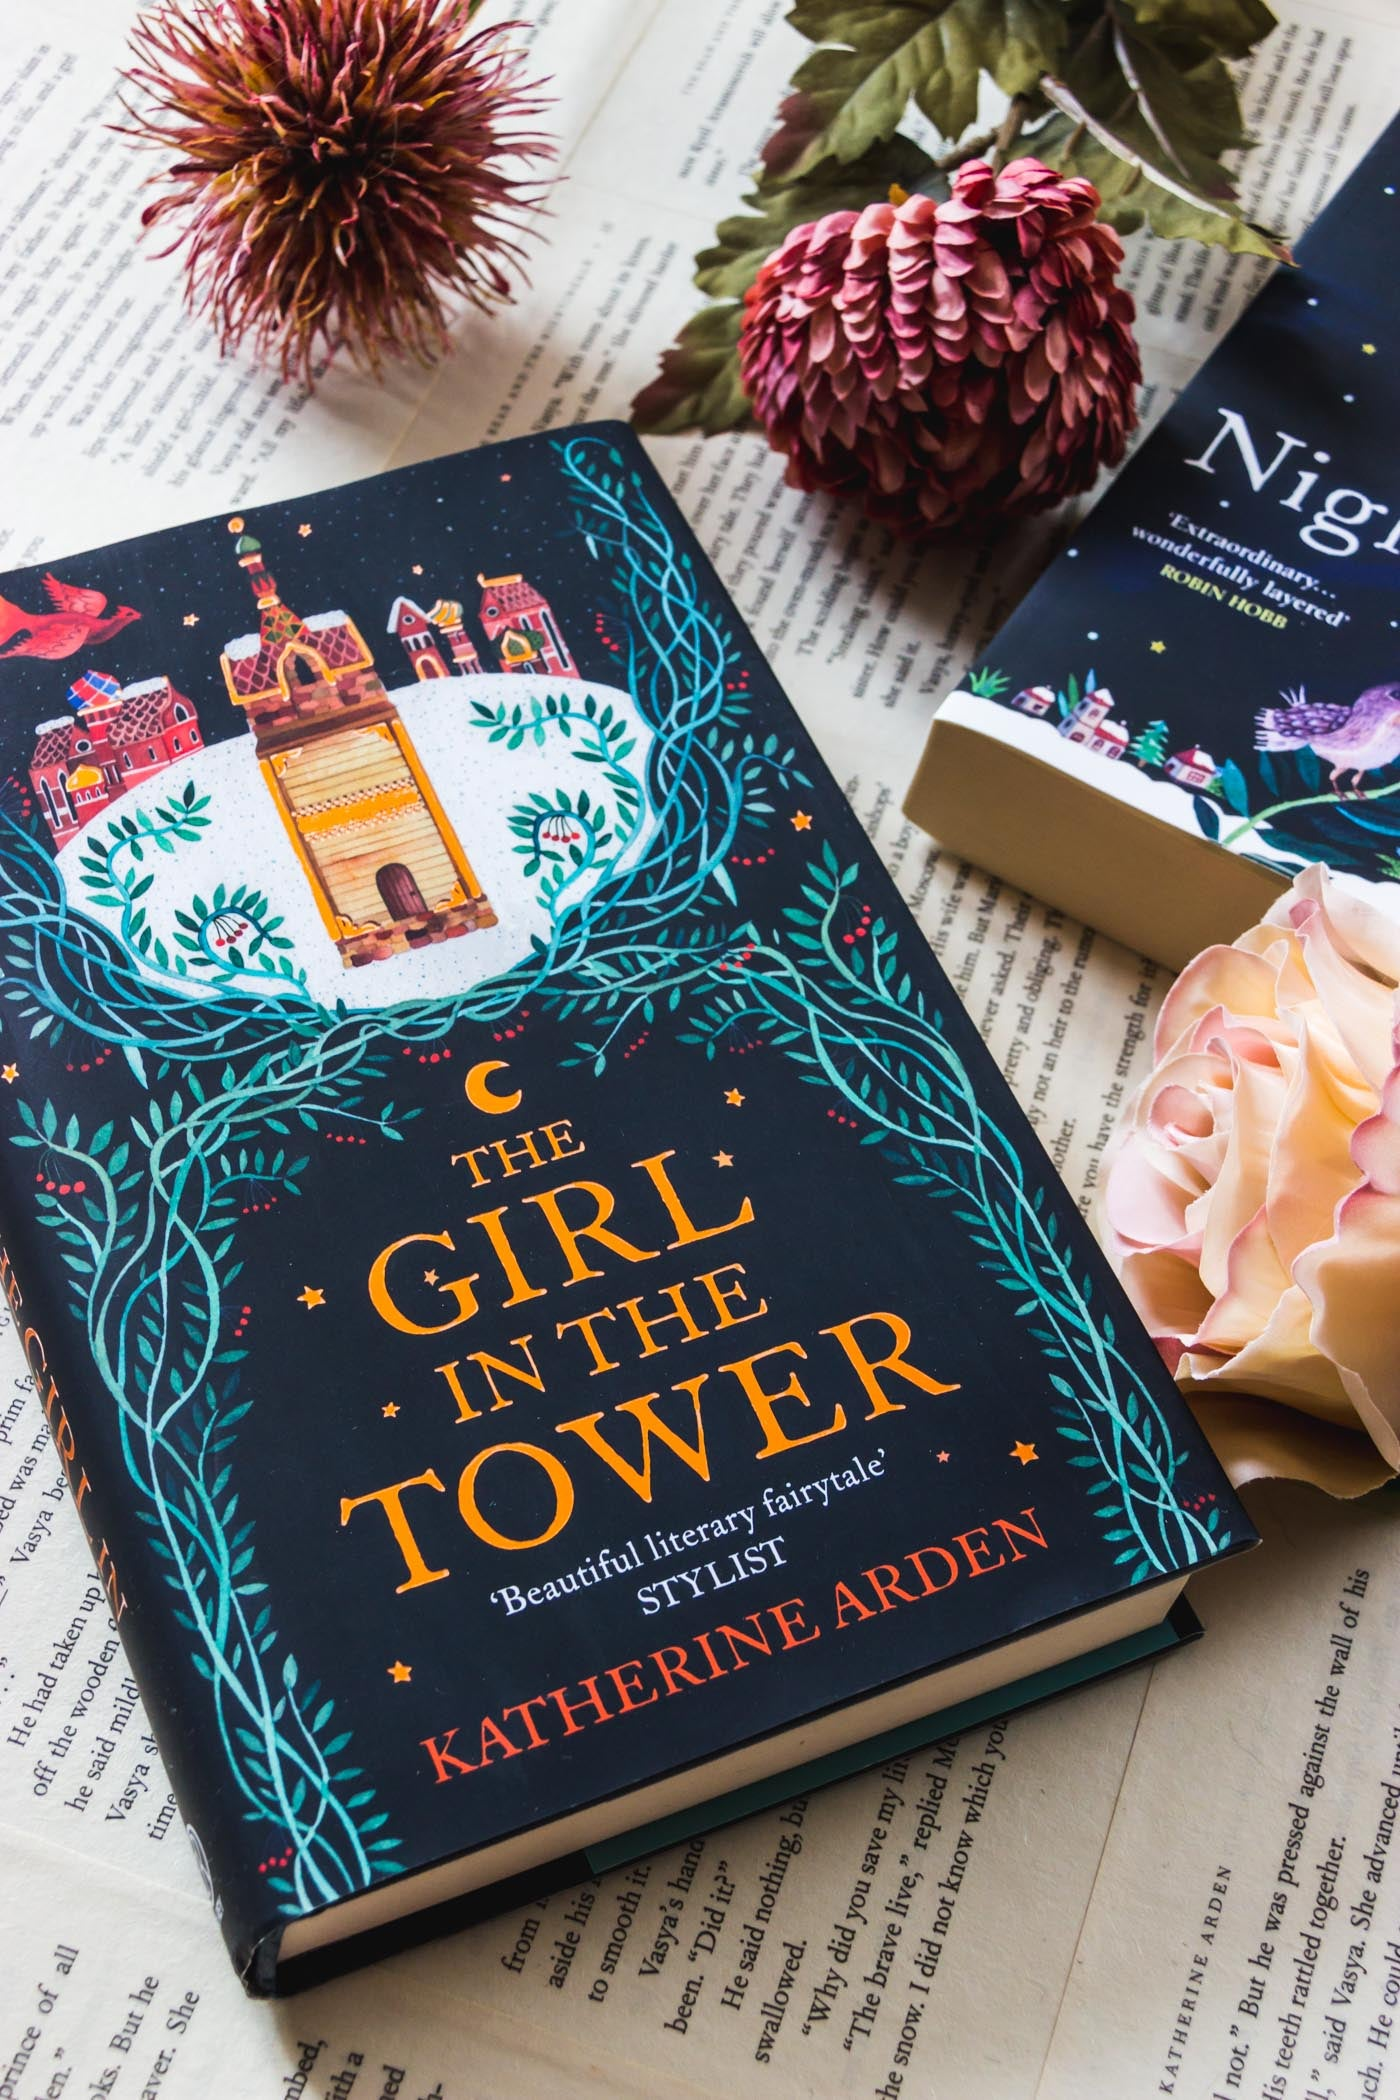 The Bear & the Nightingale and The Girl in the Tower by Katherine Arden (Winternight Trilogy)